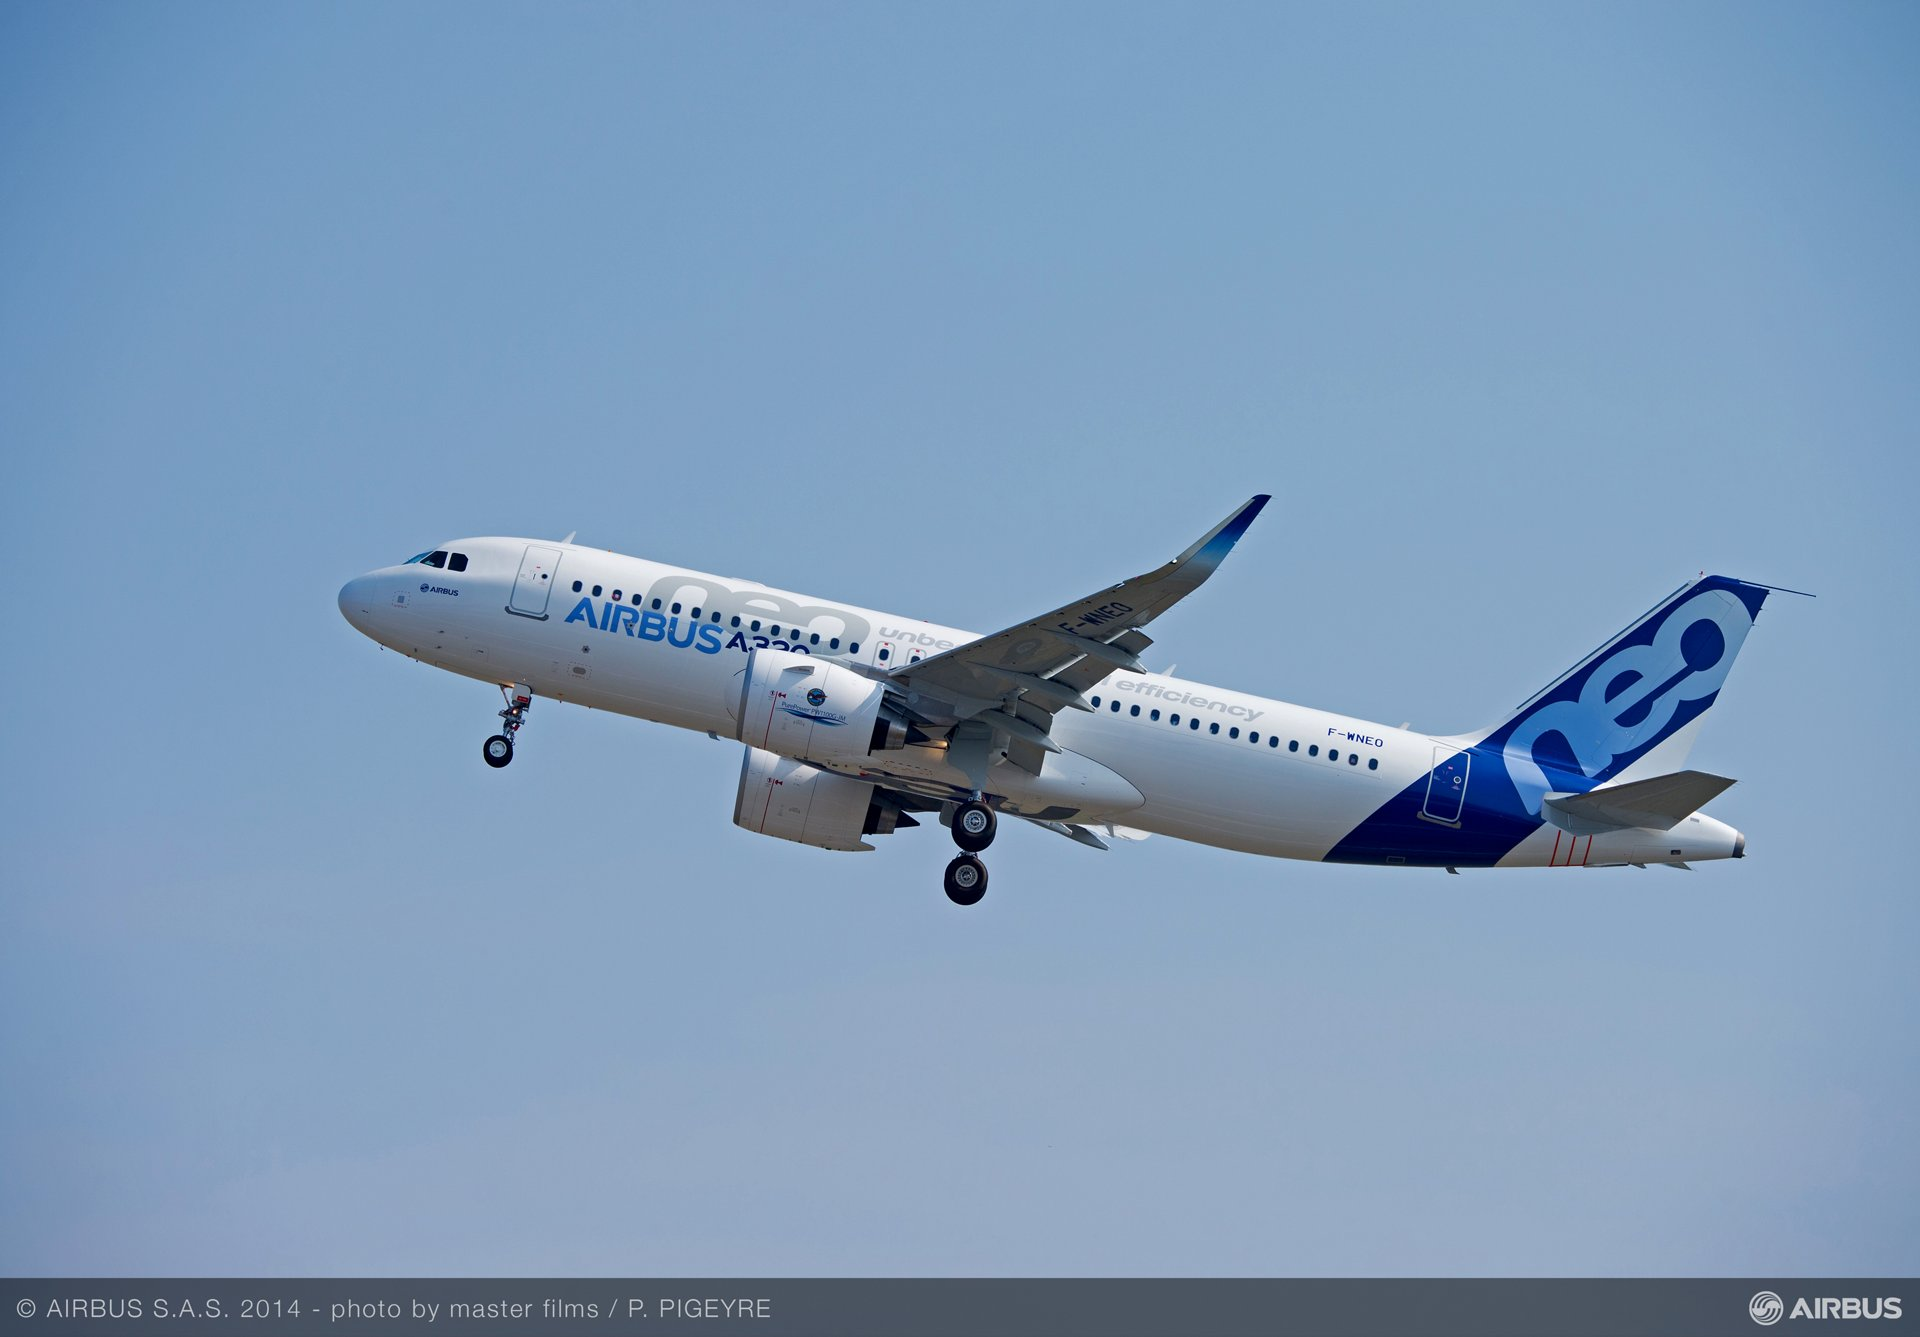 The 25 September 2014 A320neo first flight opens a new chapter in the successful history of Airbus' market-leading single-aisle product line